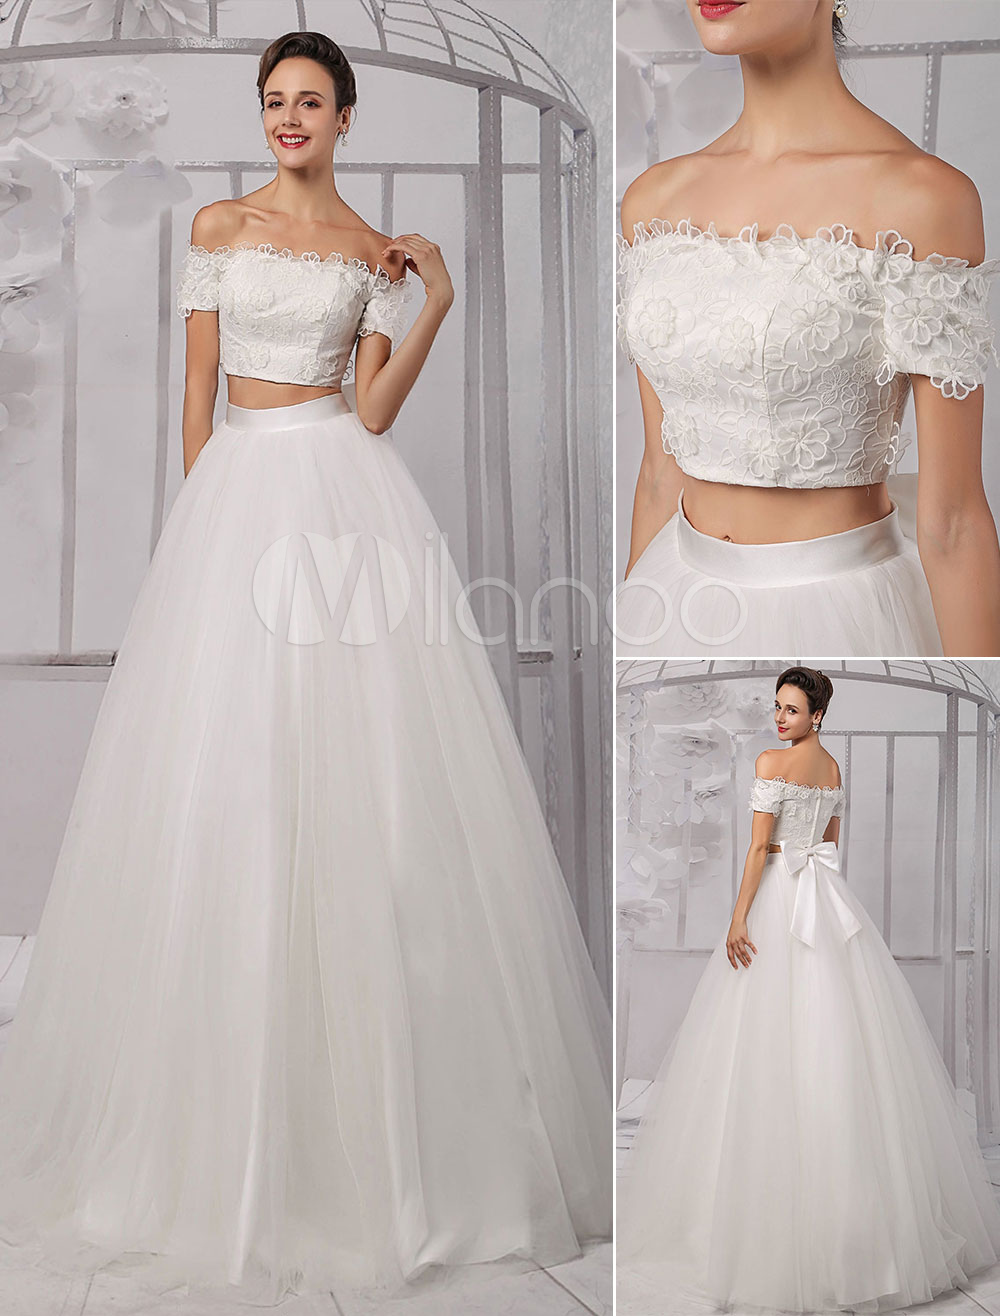 07f53ba0af6c39 ... Two-Pieces Crop Top Off-the-shoulder Ball Gown Wedding Dress With Floral.  12. 30%OFF. Color Ivory